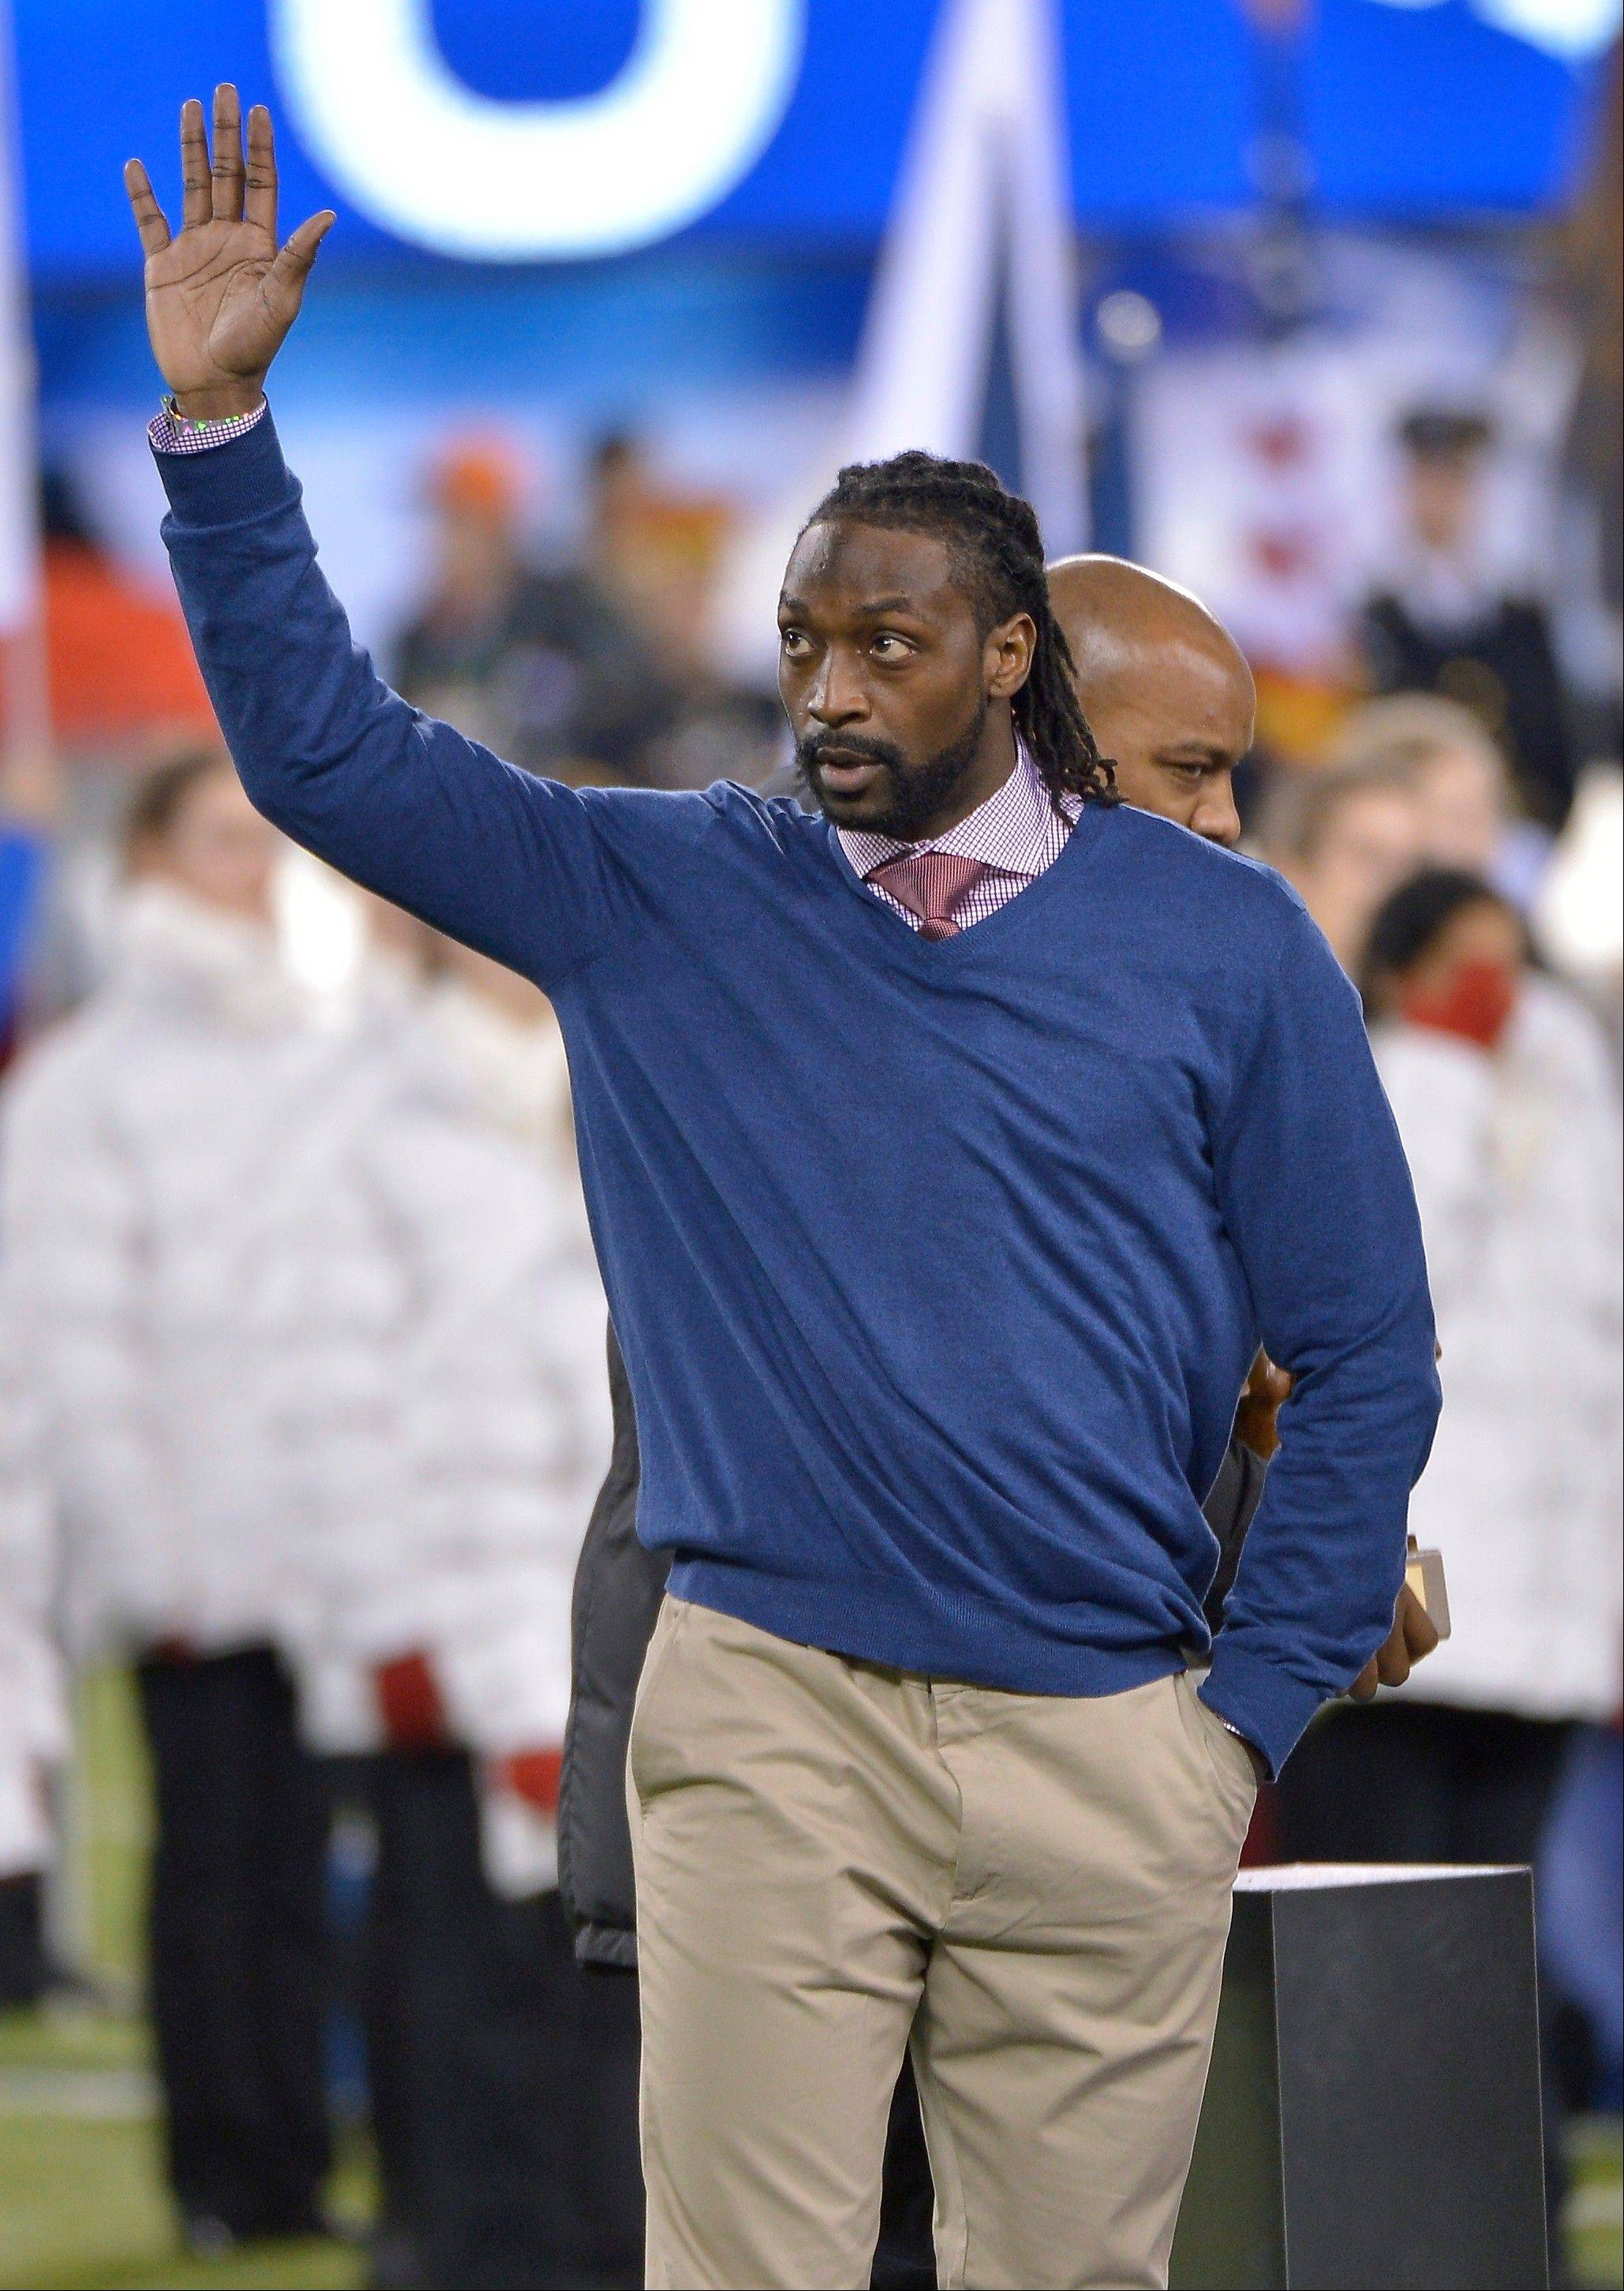 Chicago Bears' Charles Tillman waves after being introduced as the 2013 Walter Payton Man of the Year award winner before the NFL Super Bowl XLVIII football game.